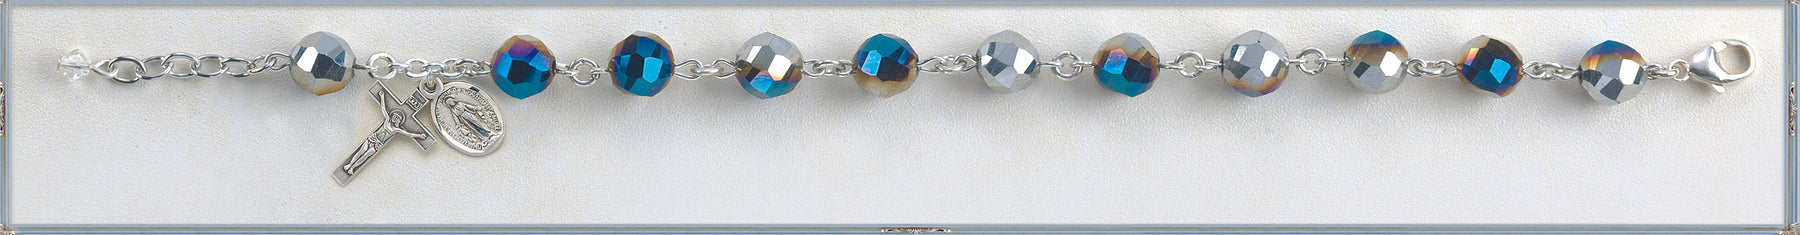 Metallic Silver Tin Cut Crystal Bracelet